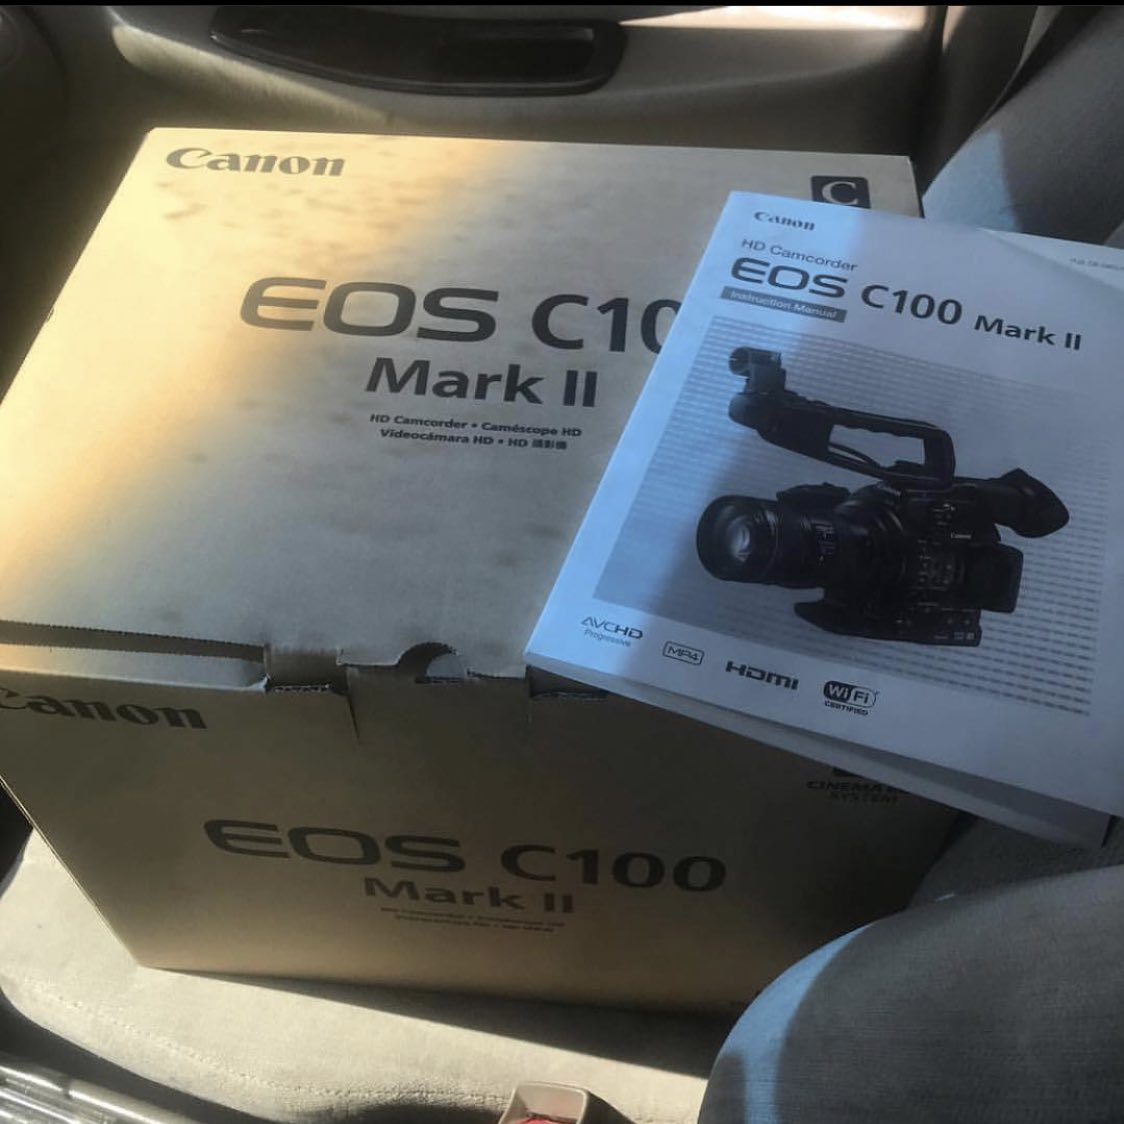 So in June 2017 I purchased my very first camcorder and told myself I was gonna chase my dreams, then in August 2018 I invest in an iMac and created Booney Films Studios, and now March 7th 2020 I'll be releasing my first short film !!!! Crazy. pic.twitter.com/ZaWDKC1k2F